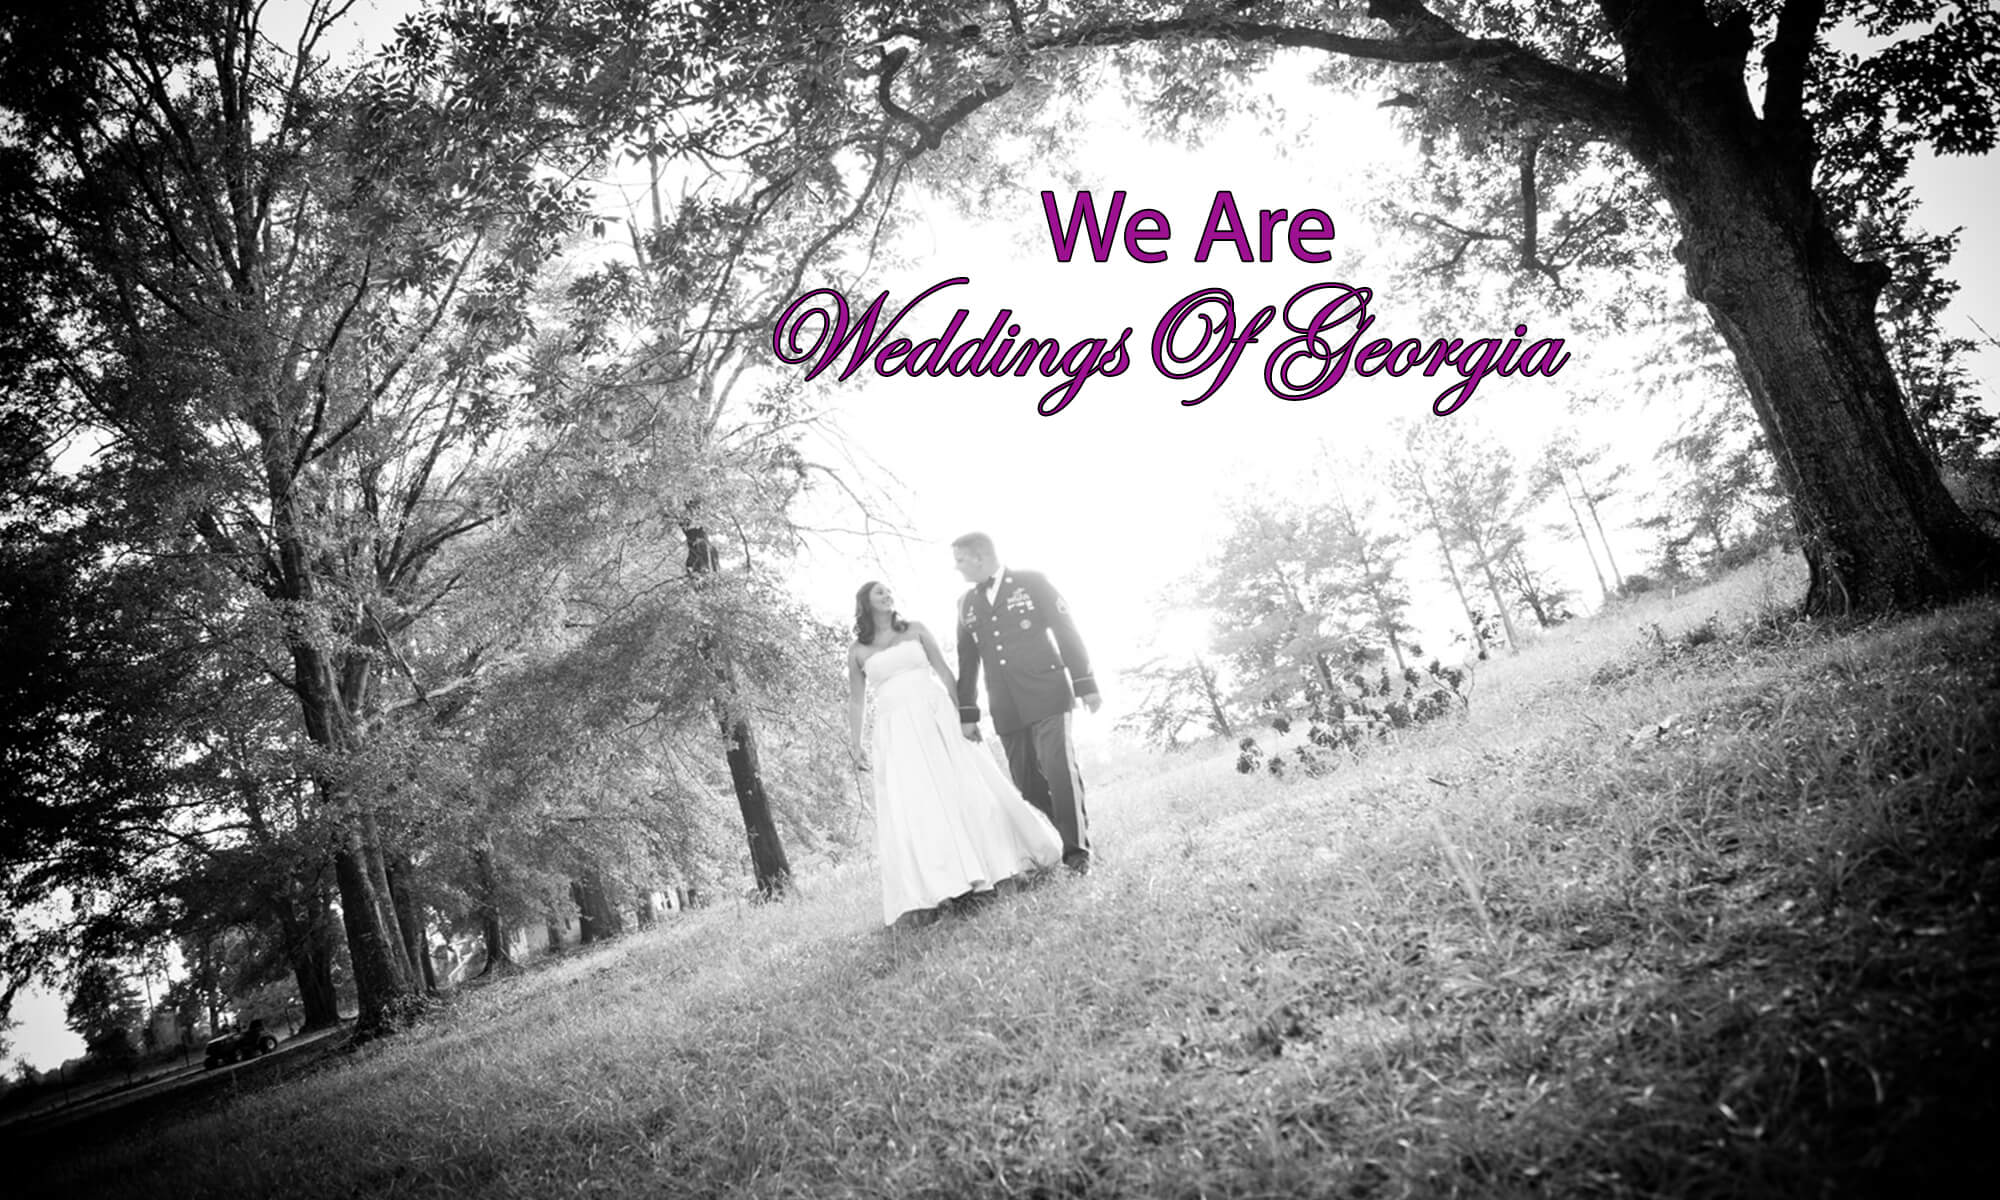 Weddings Of Georgia Vendors